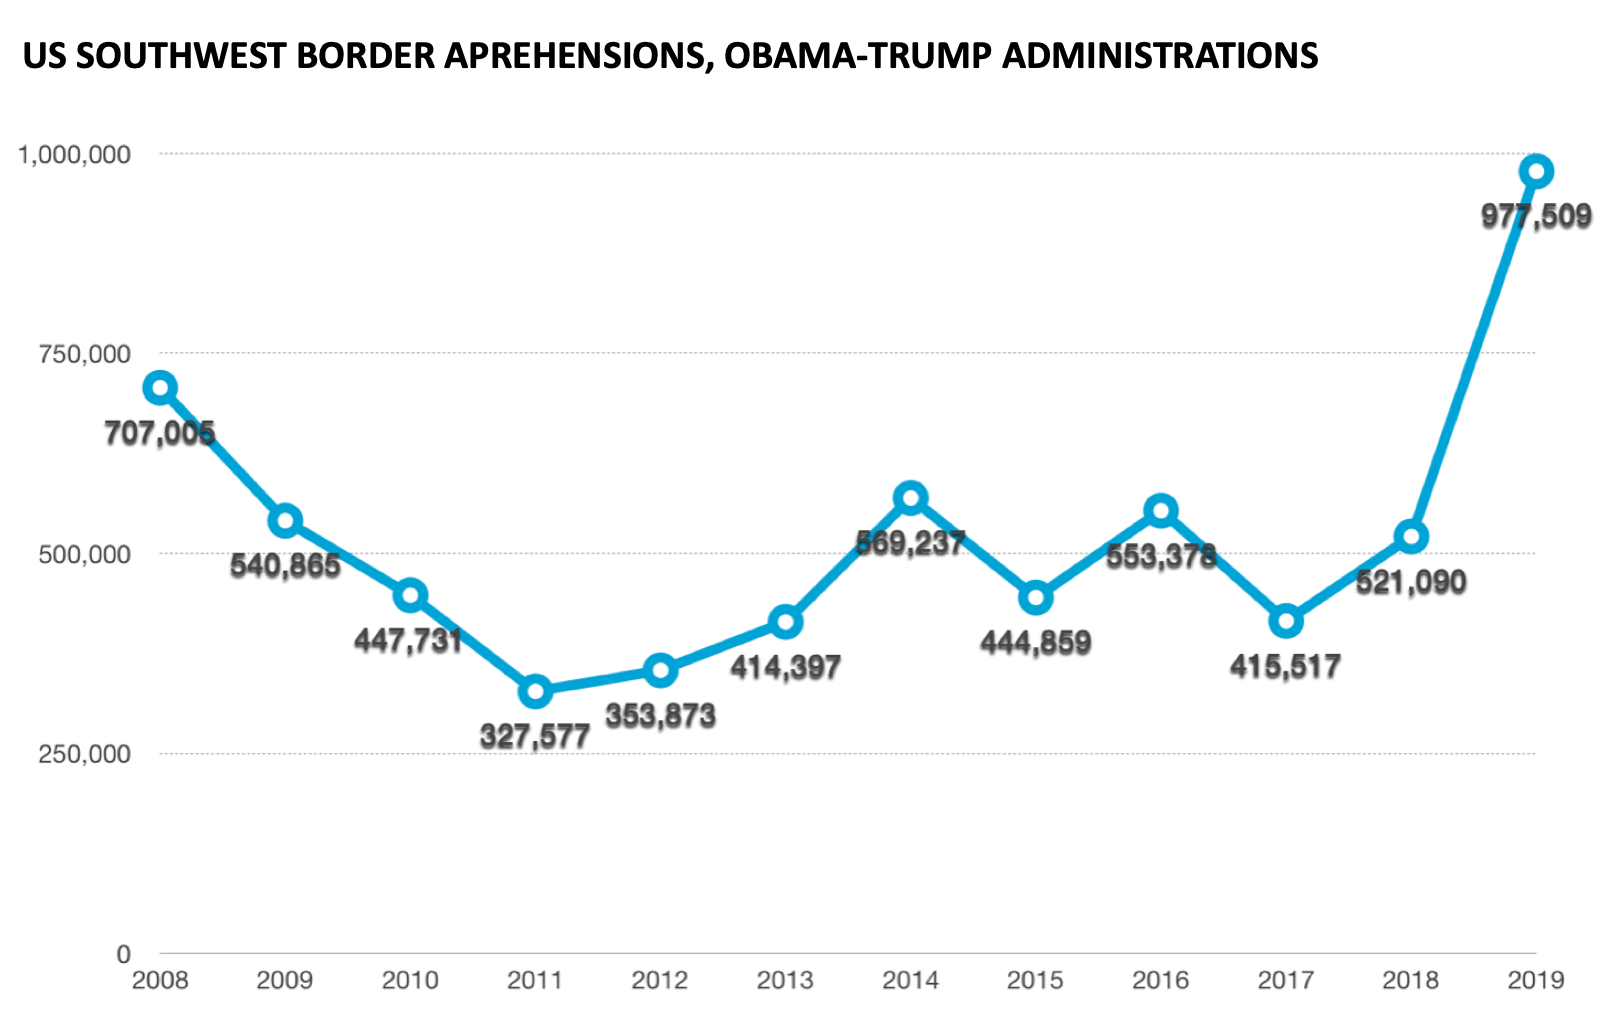 Number of apprehensions and inadmissibles on the US border with Mexico [Source: CBP]